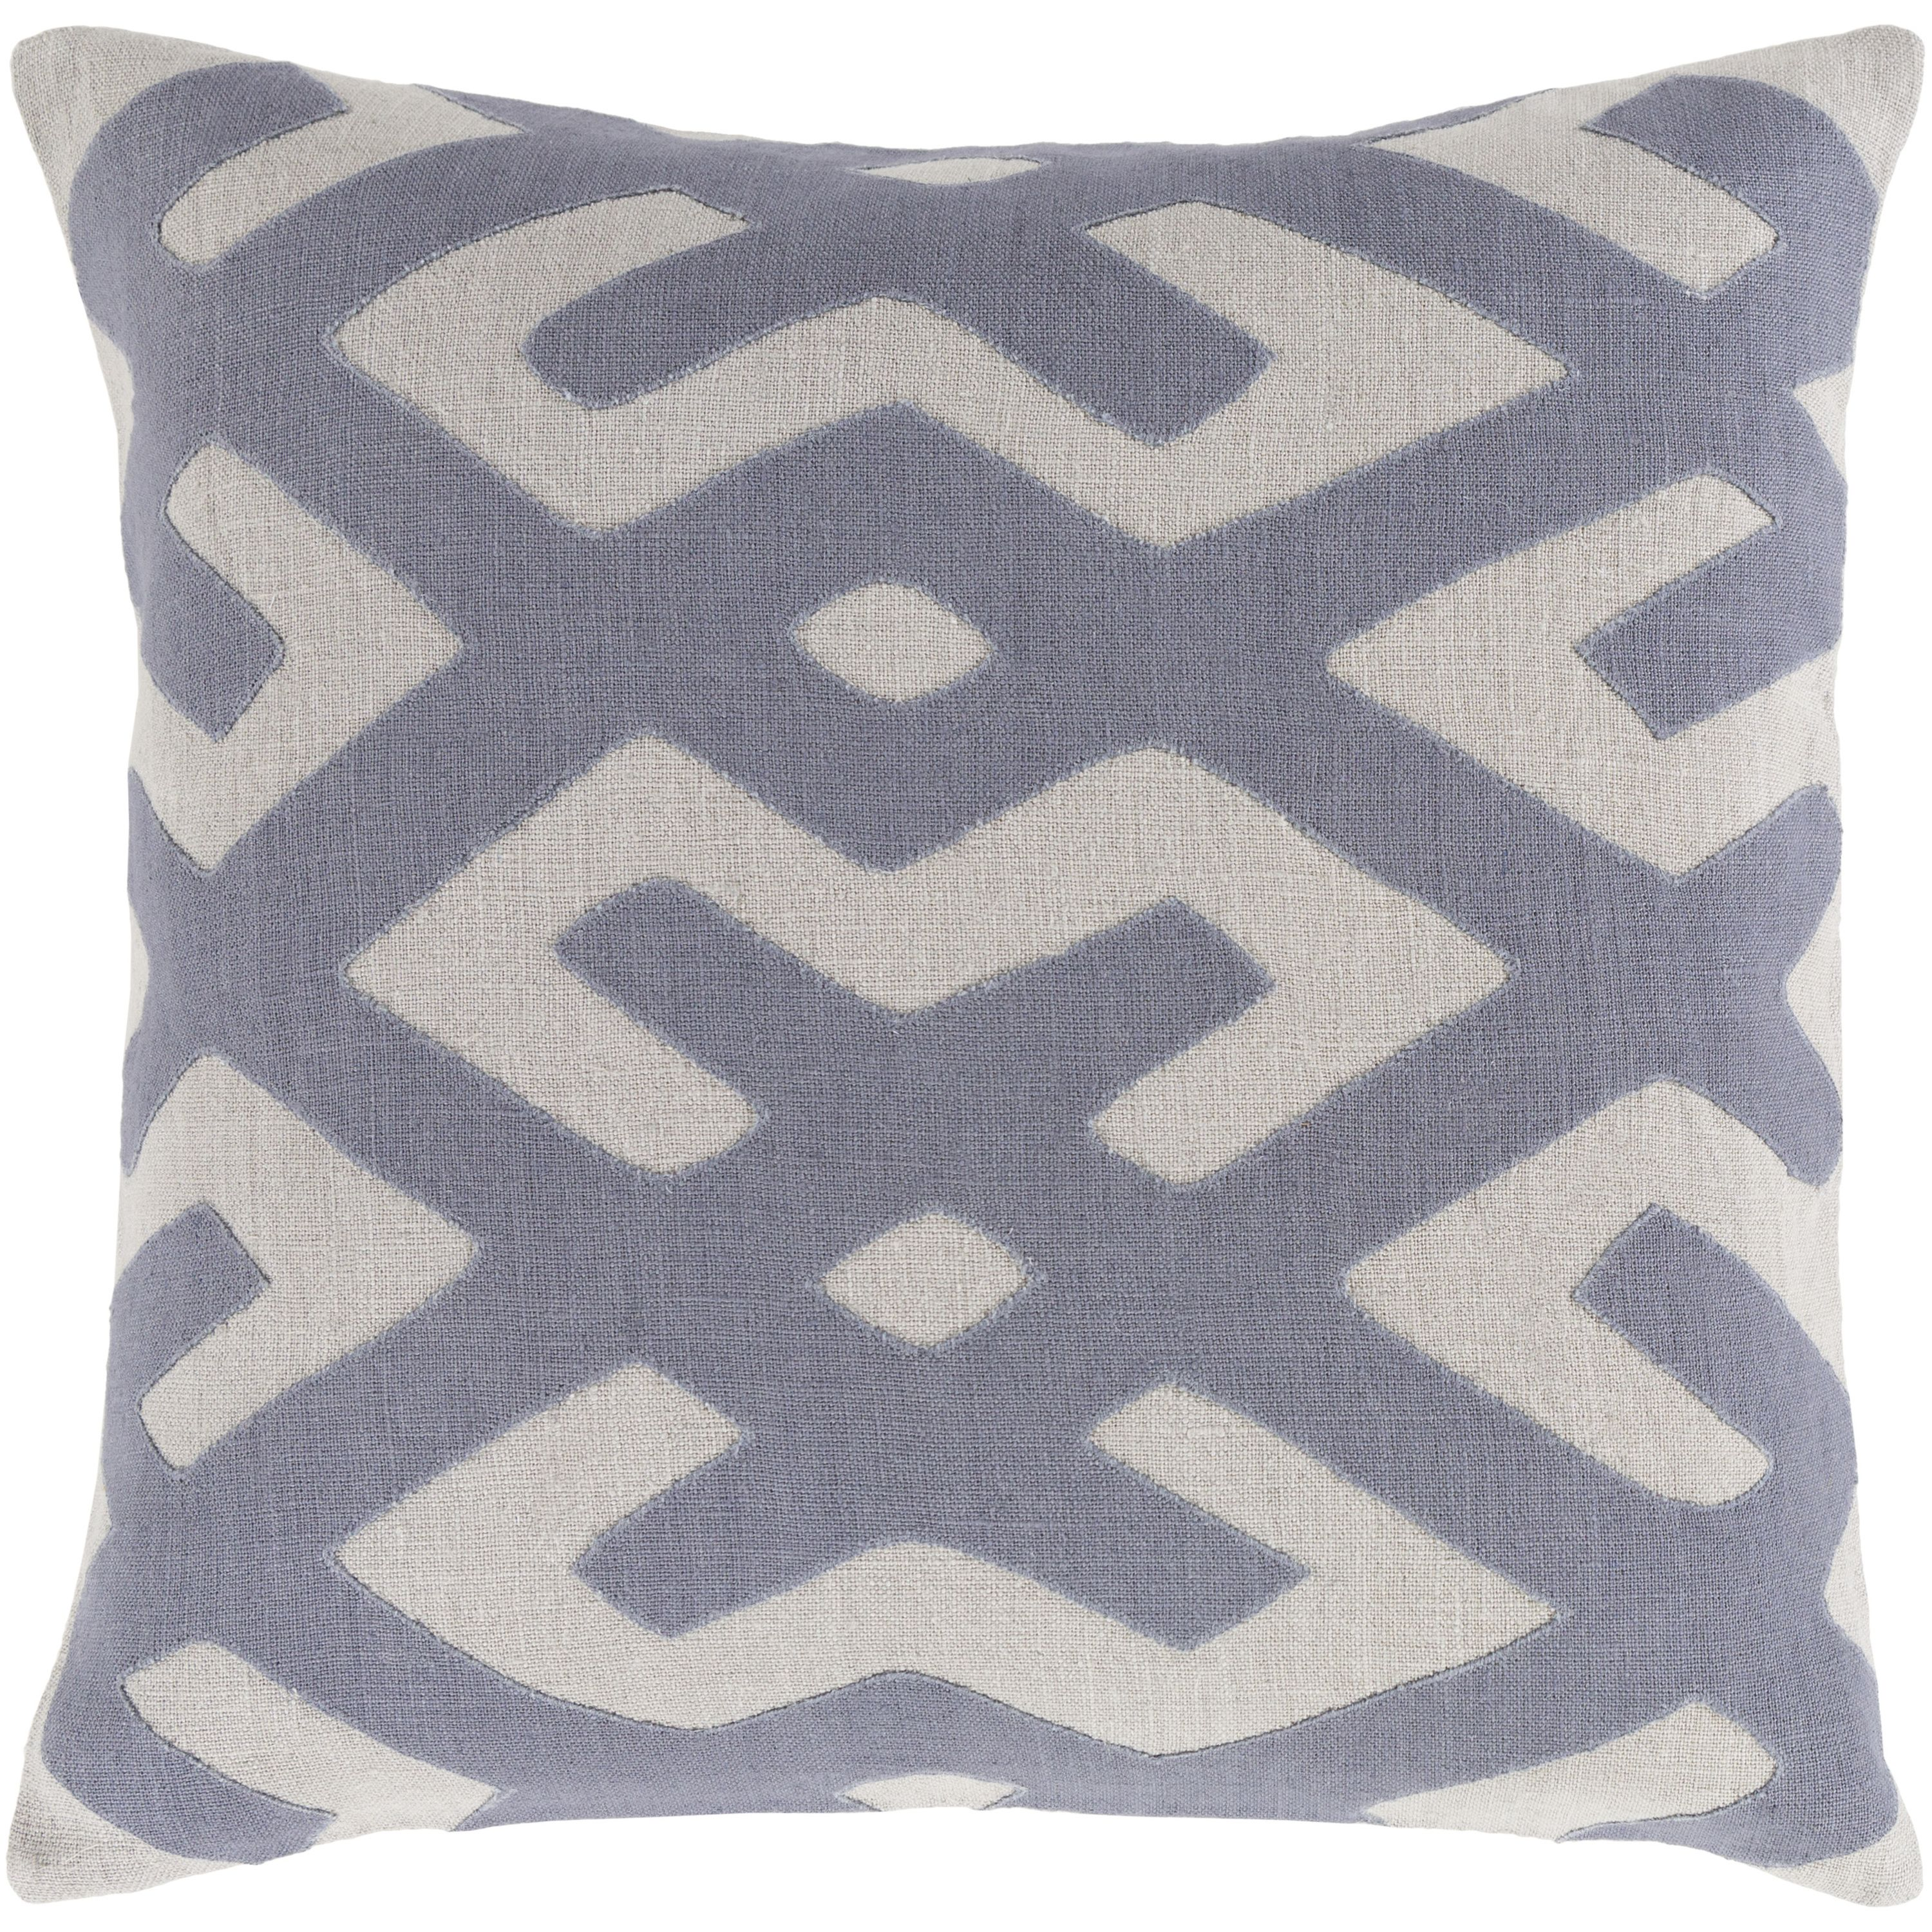 Isa pillow blue steel project pp pinterest pillows steel and